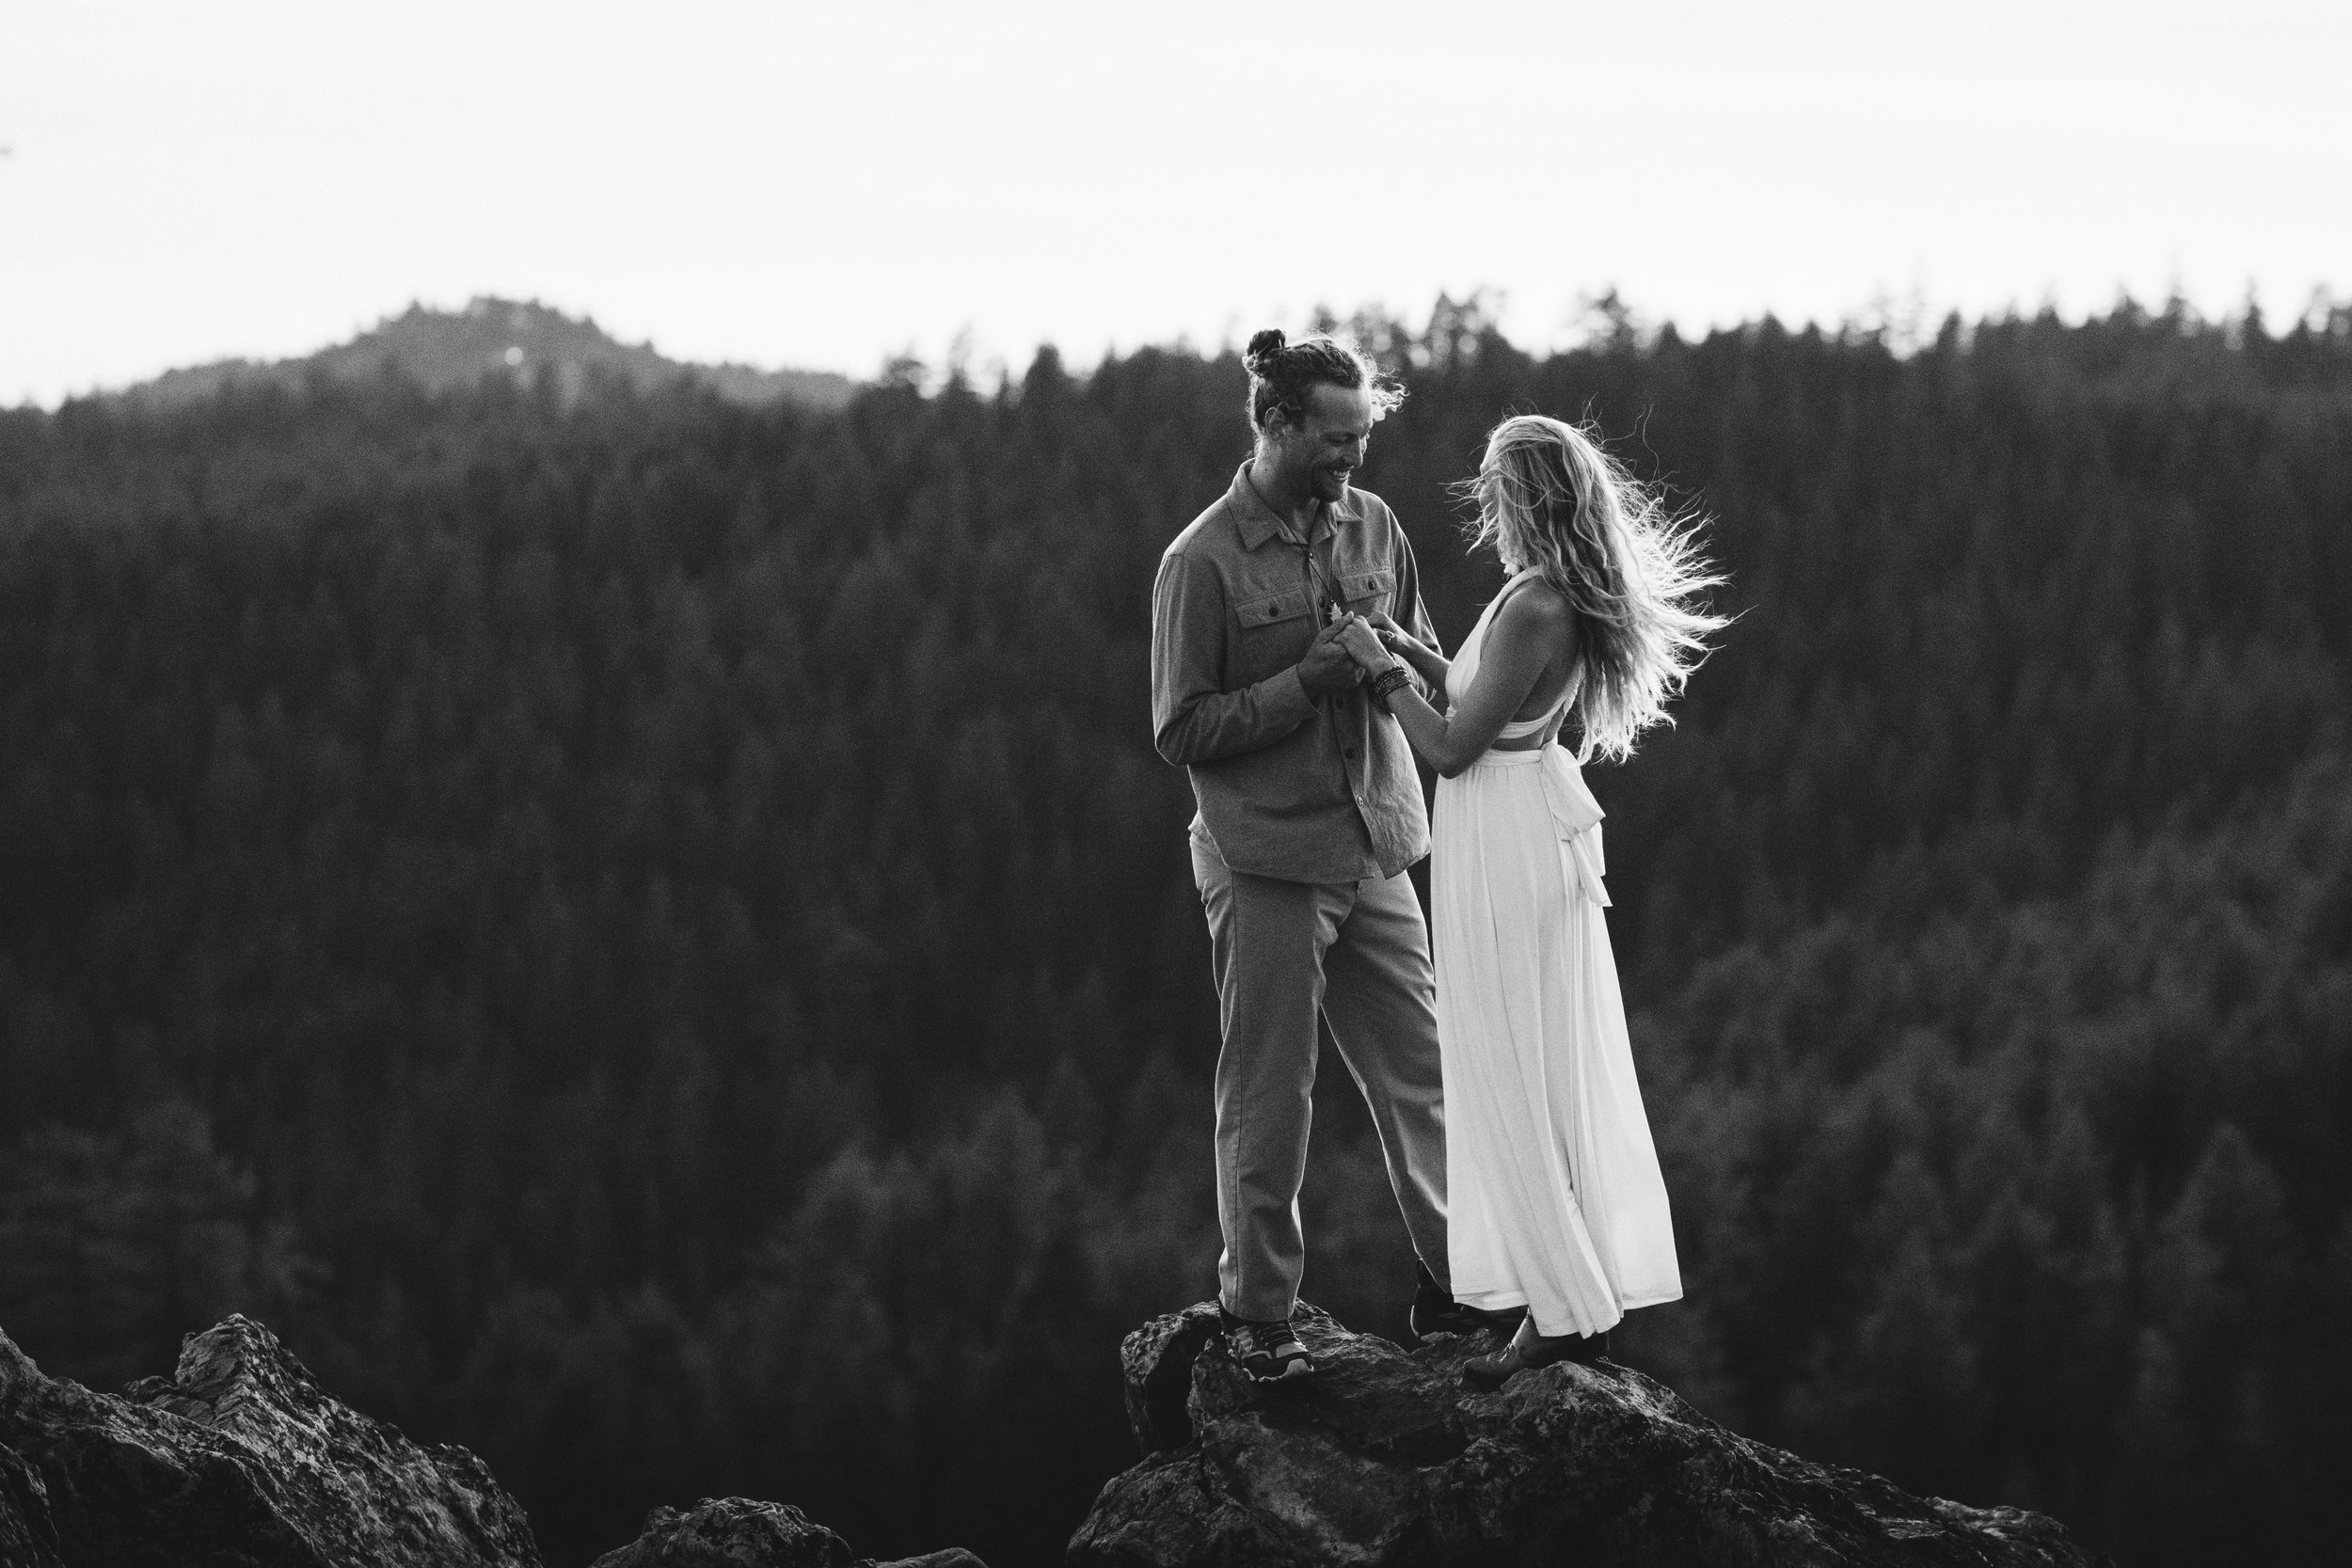 0M7A9331vildphotography-adventurewedding-adventurouswedding-laketahoe-laketahoewedding-weddingphotographer-laketahoeweddingphotographer-adventurouscouples-carl-tiffiny.jpg